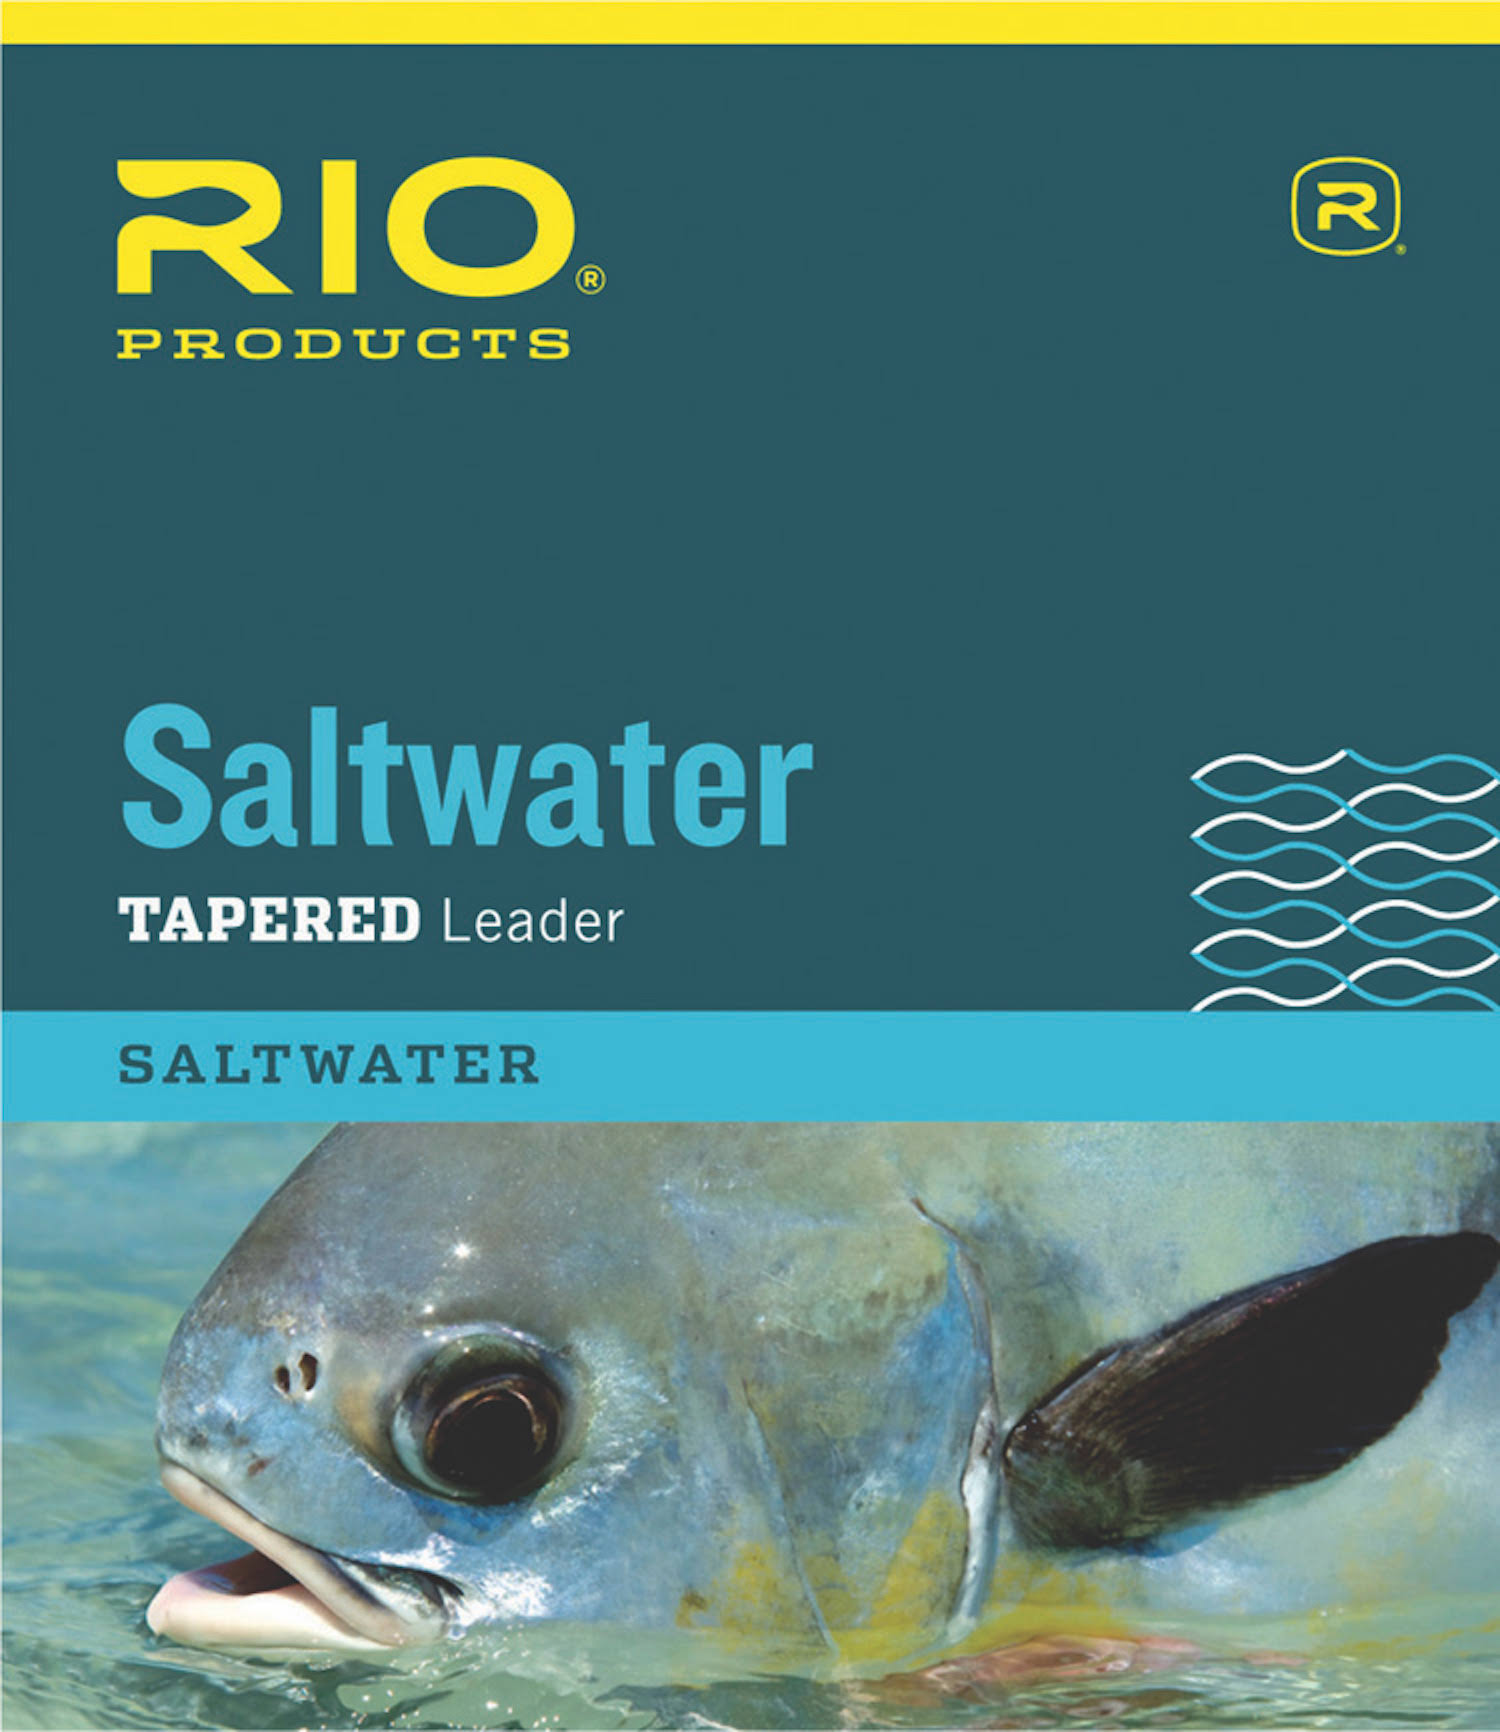 Rio Saltwater Tapered Leader - 10', 12lbs